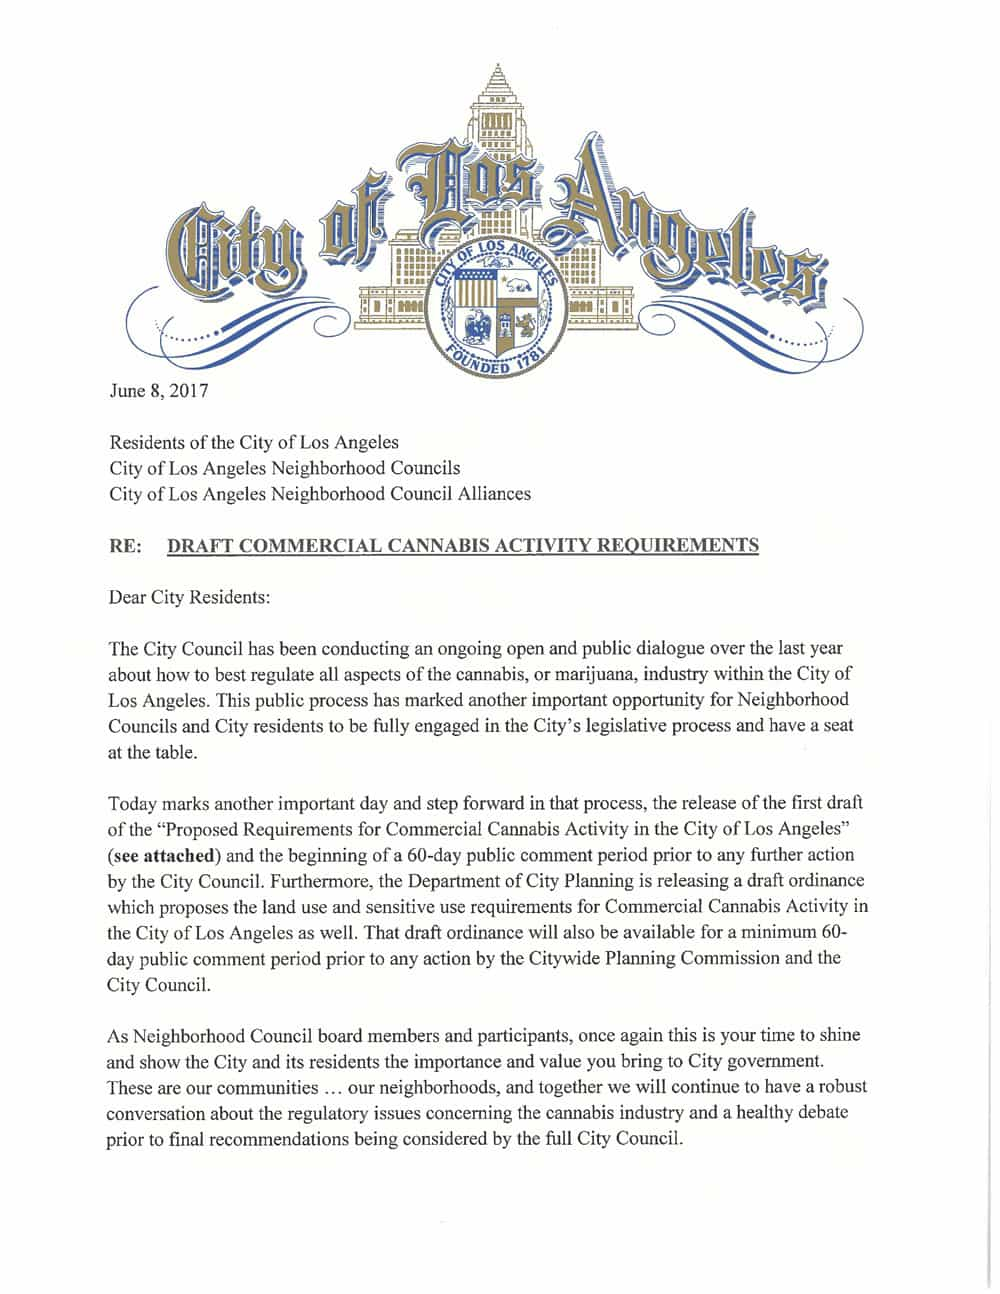 City of Los Angeles Releases Much Anticipated Draft Cannabis Regulations